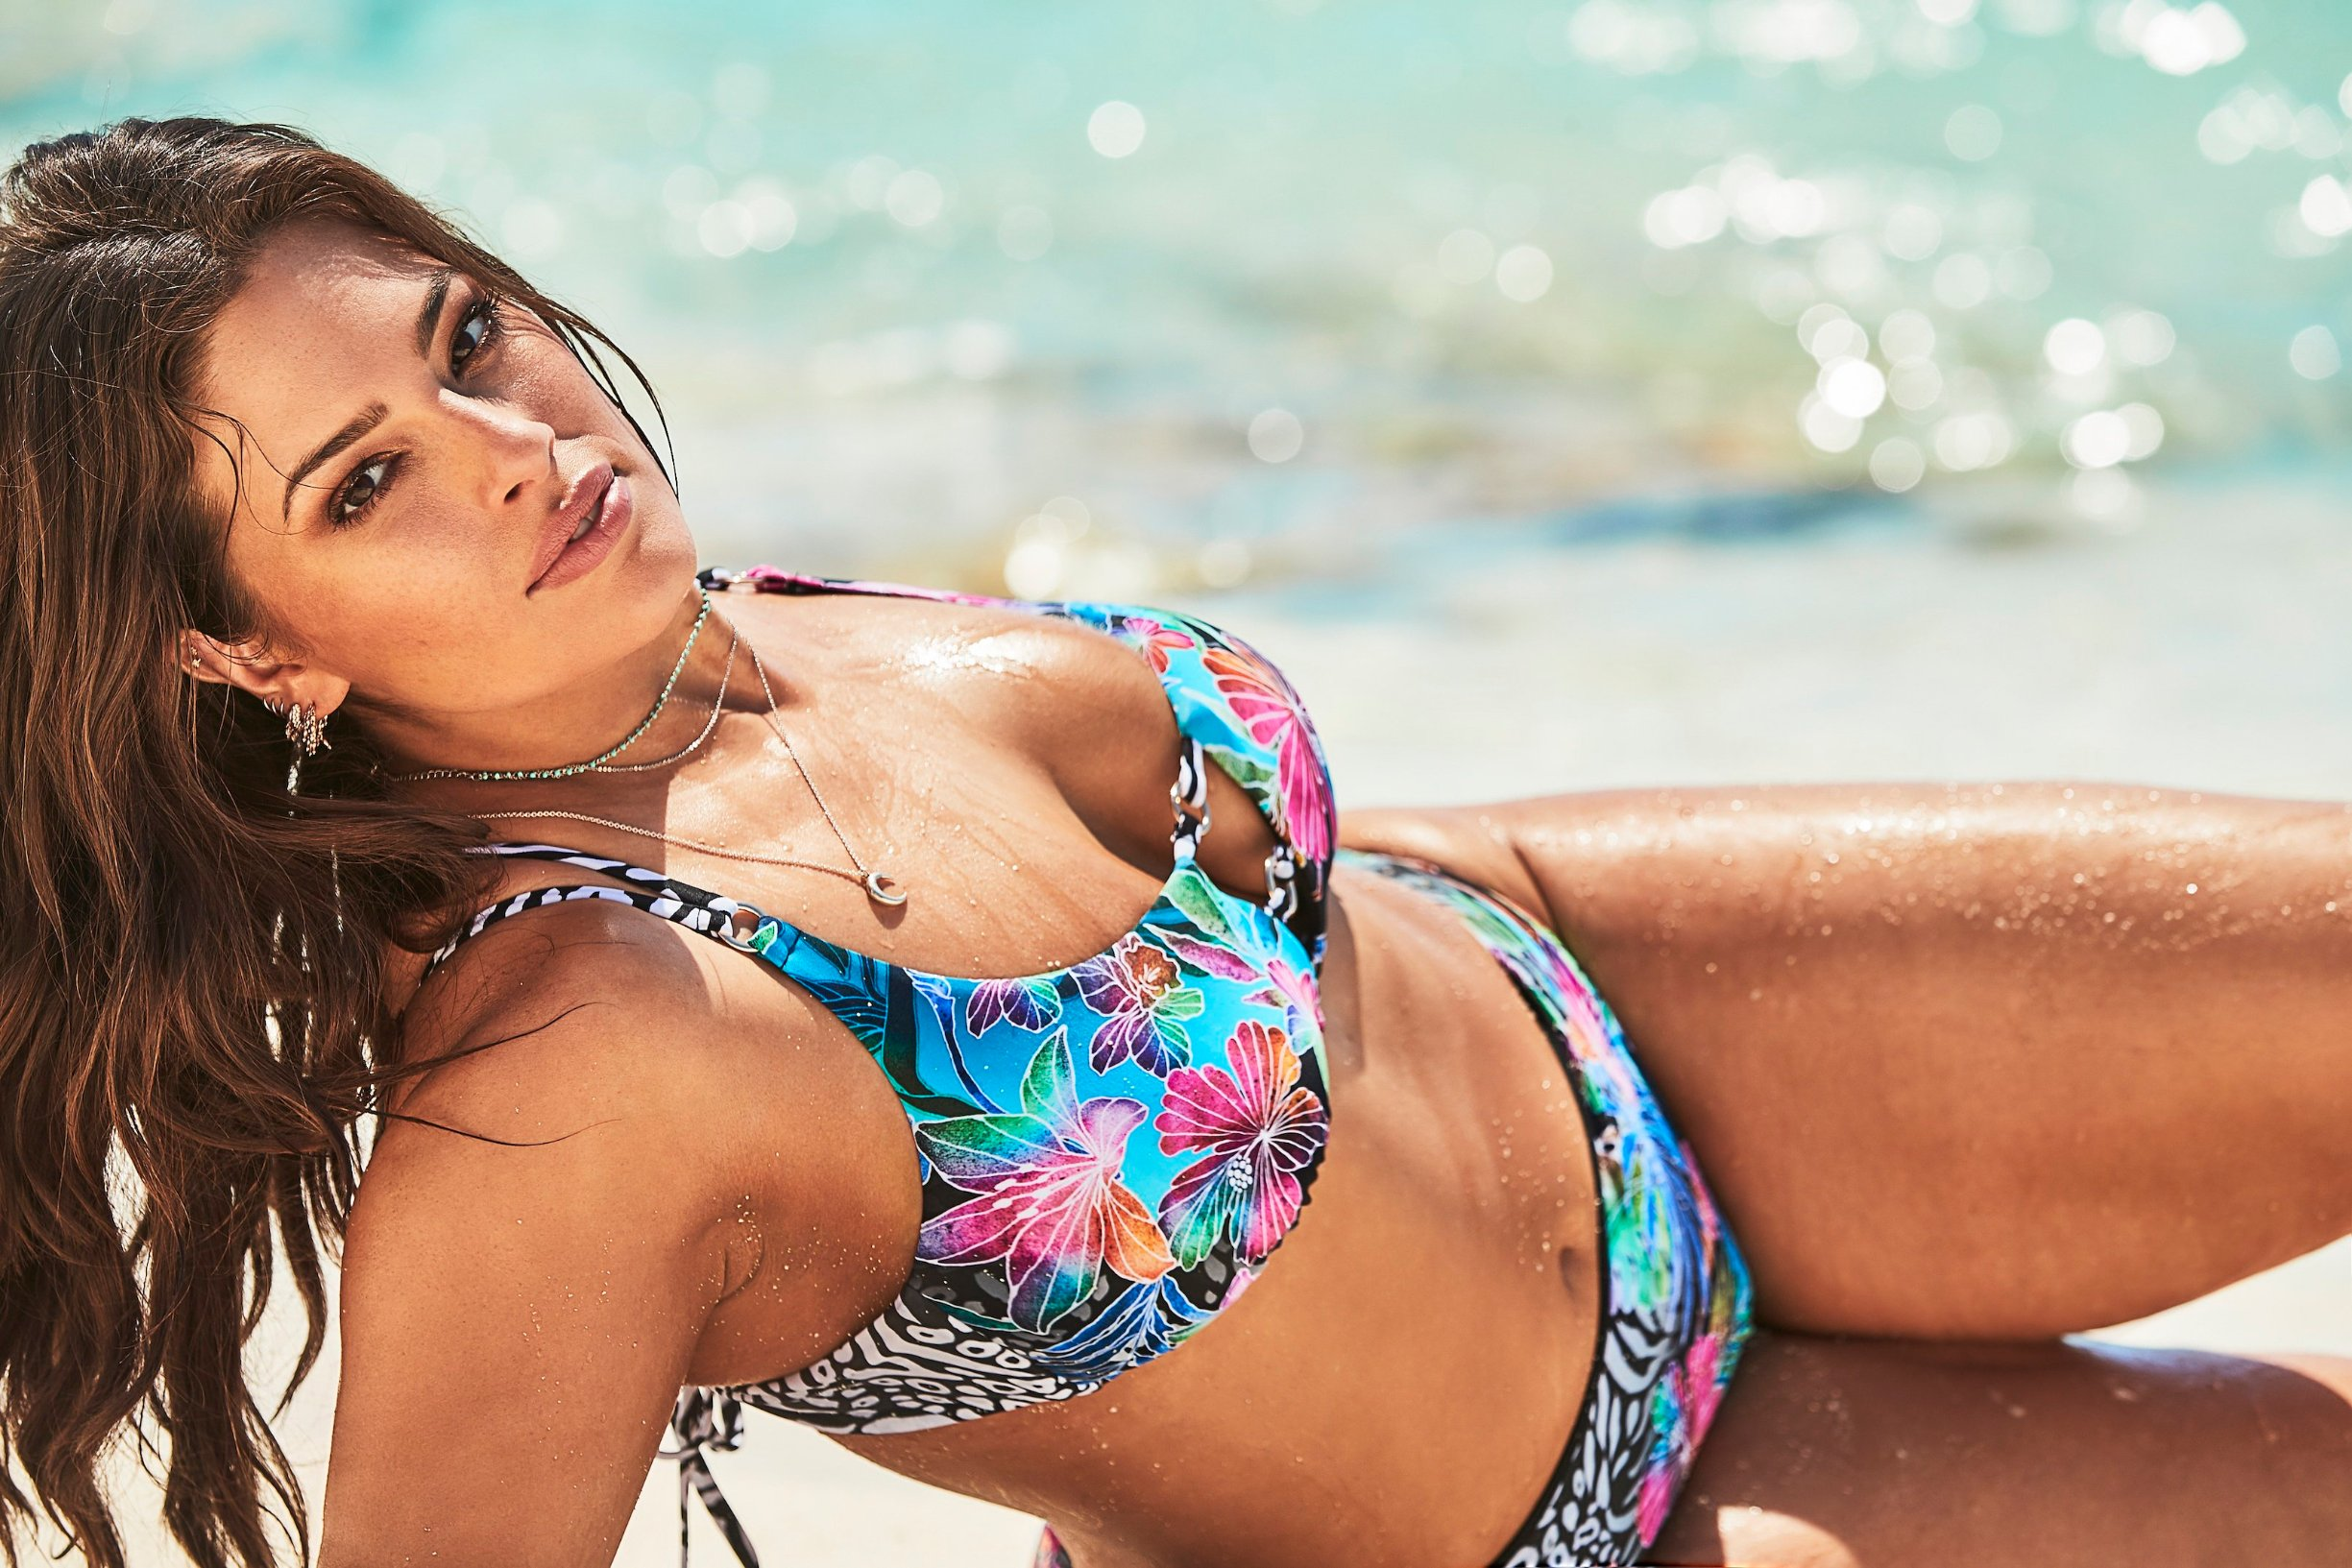 Ashley Graham proudly shows off her voluptuous figure alongside her sister in the new Swimsuits For All summer collection. The 31-year-old plus-size model is joined by her younger sister Abigail in the summery beach photoshoot, where the pair are seen cavorting together in the surf.  The new capsule collection celebrates the immeasurable relationship, unconditional support, and encouragement that is shared among Ashley and her sister Abigail, according to the brand and the campaign was shot on the beaches ofPunta Cana, in the Dominican Republic. The campaign captures their sisterly bond through a series of